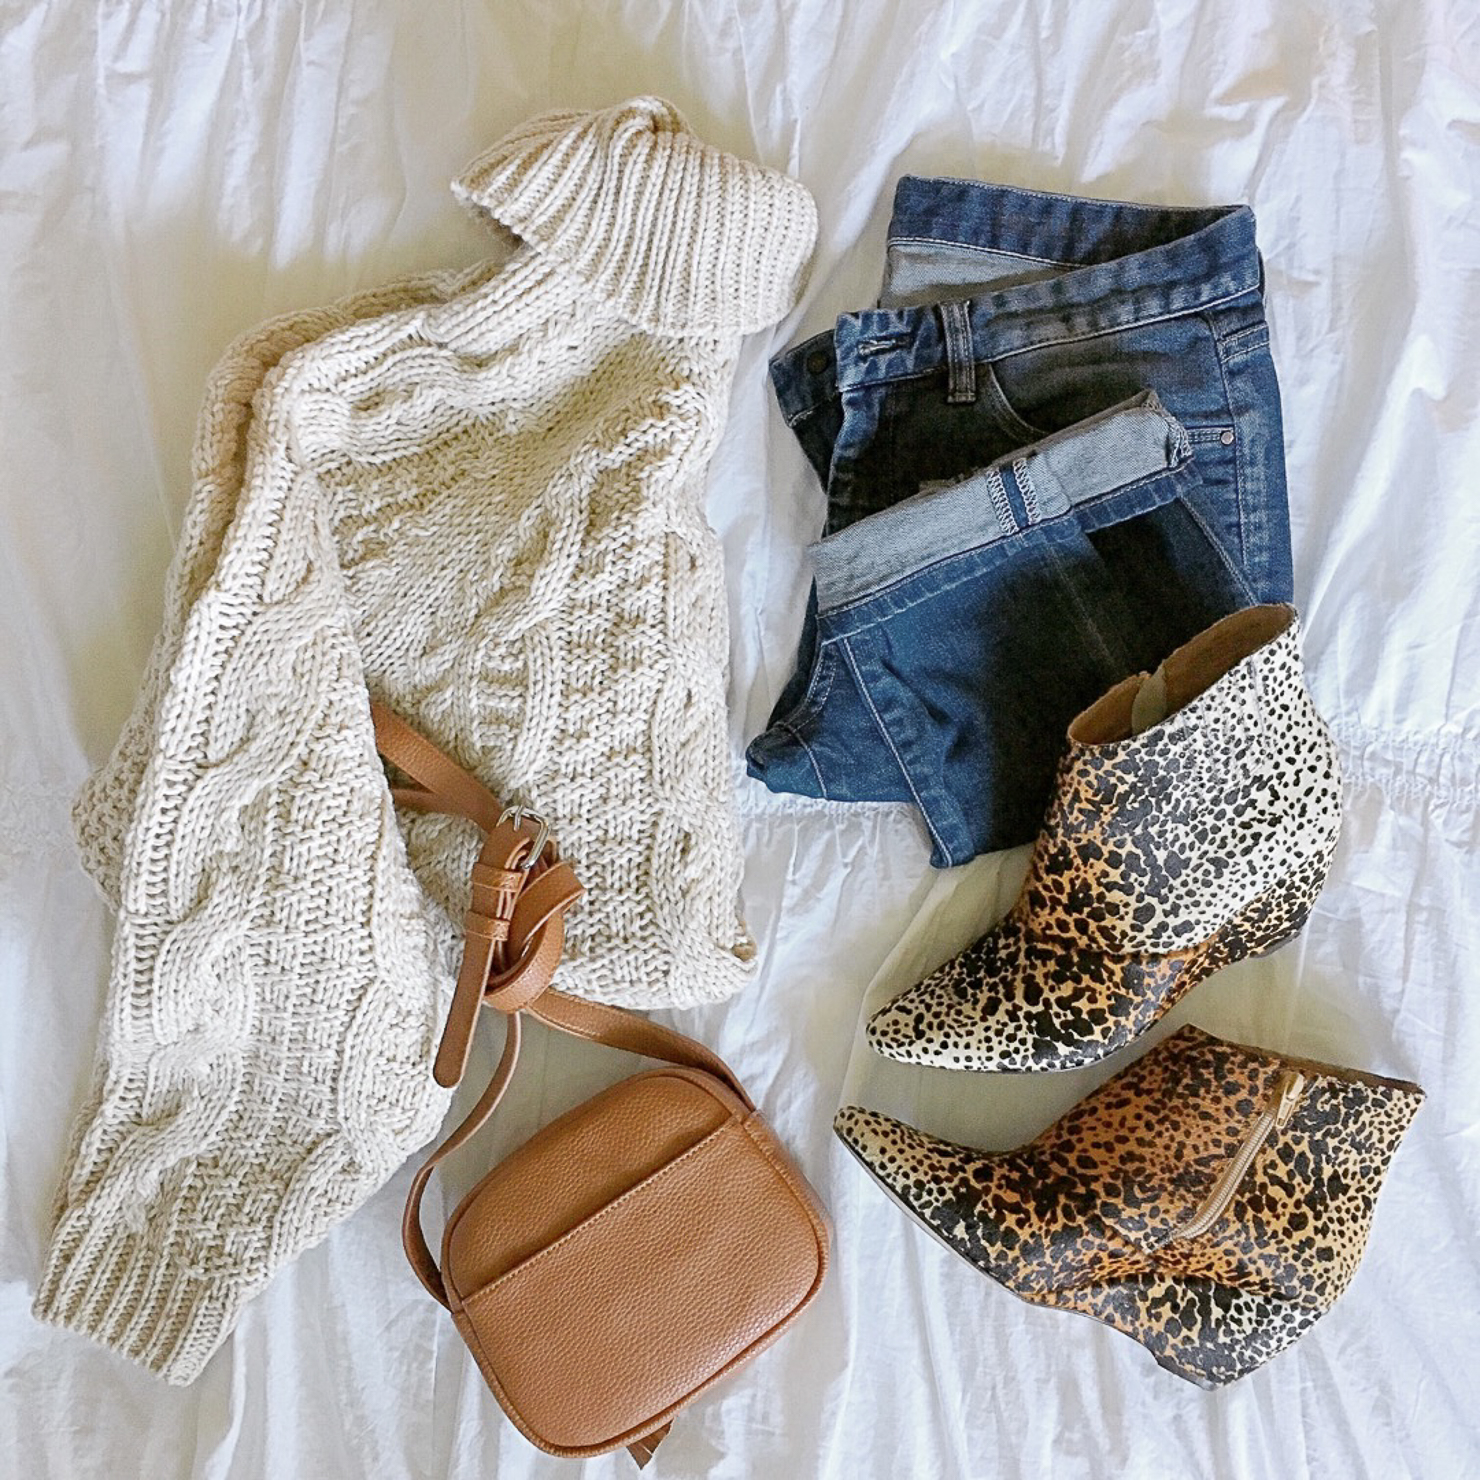 hm-cable-knit-sweater-matisse-nugent-leopard-booties-gucci-dupe-crossbody-cozy-fall-look-instagram